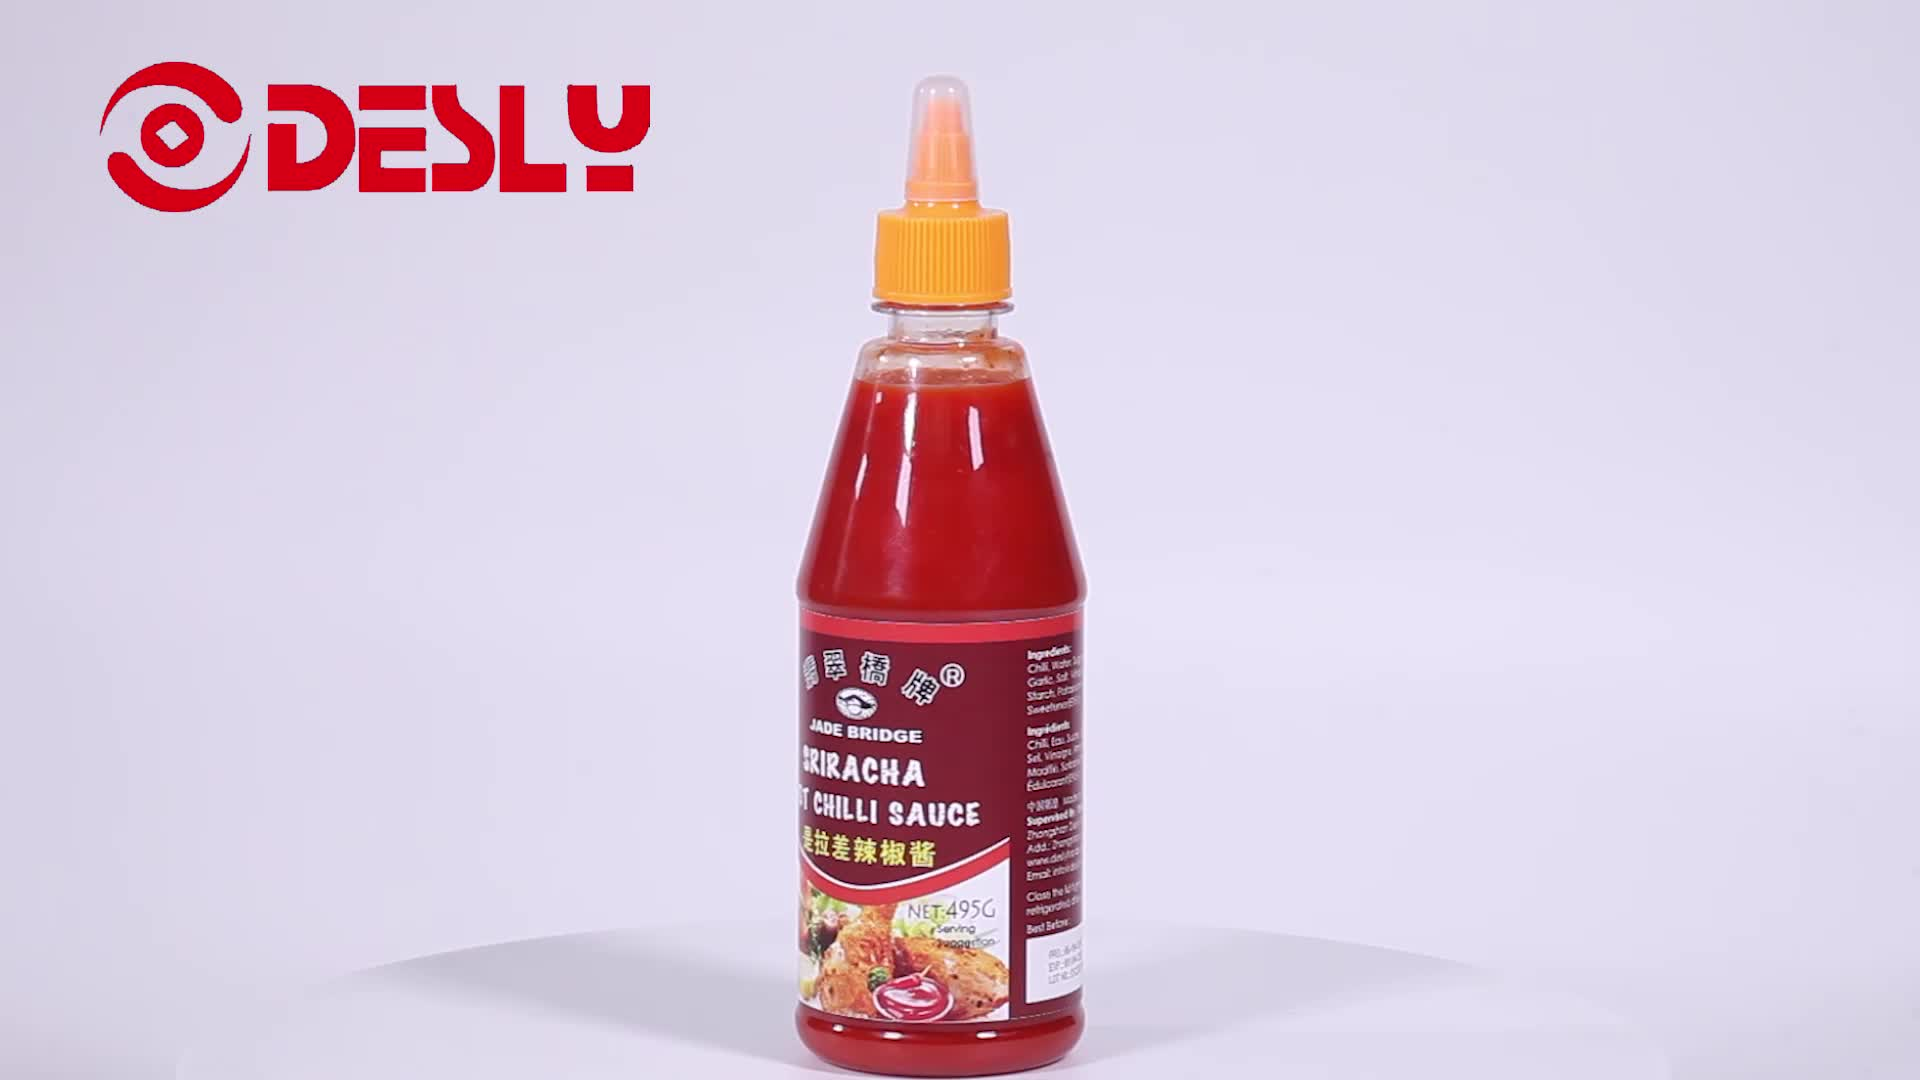 Hot 495g Squeeze Bottle Sriracha Chilli Sauce